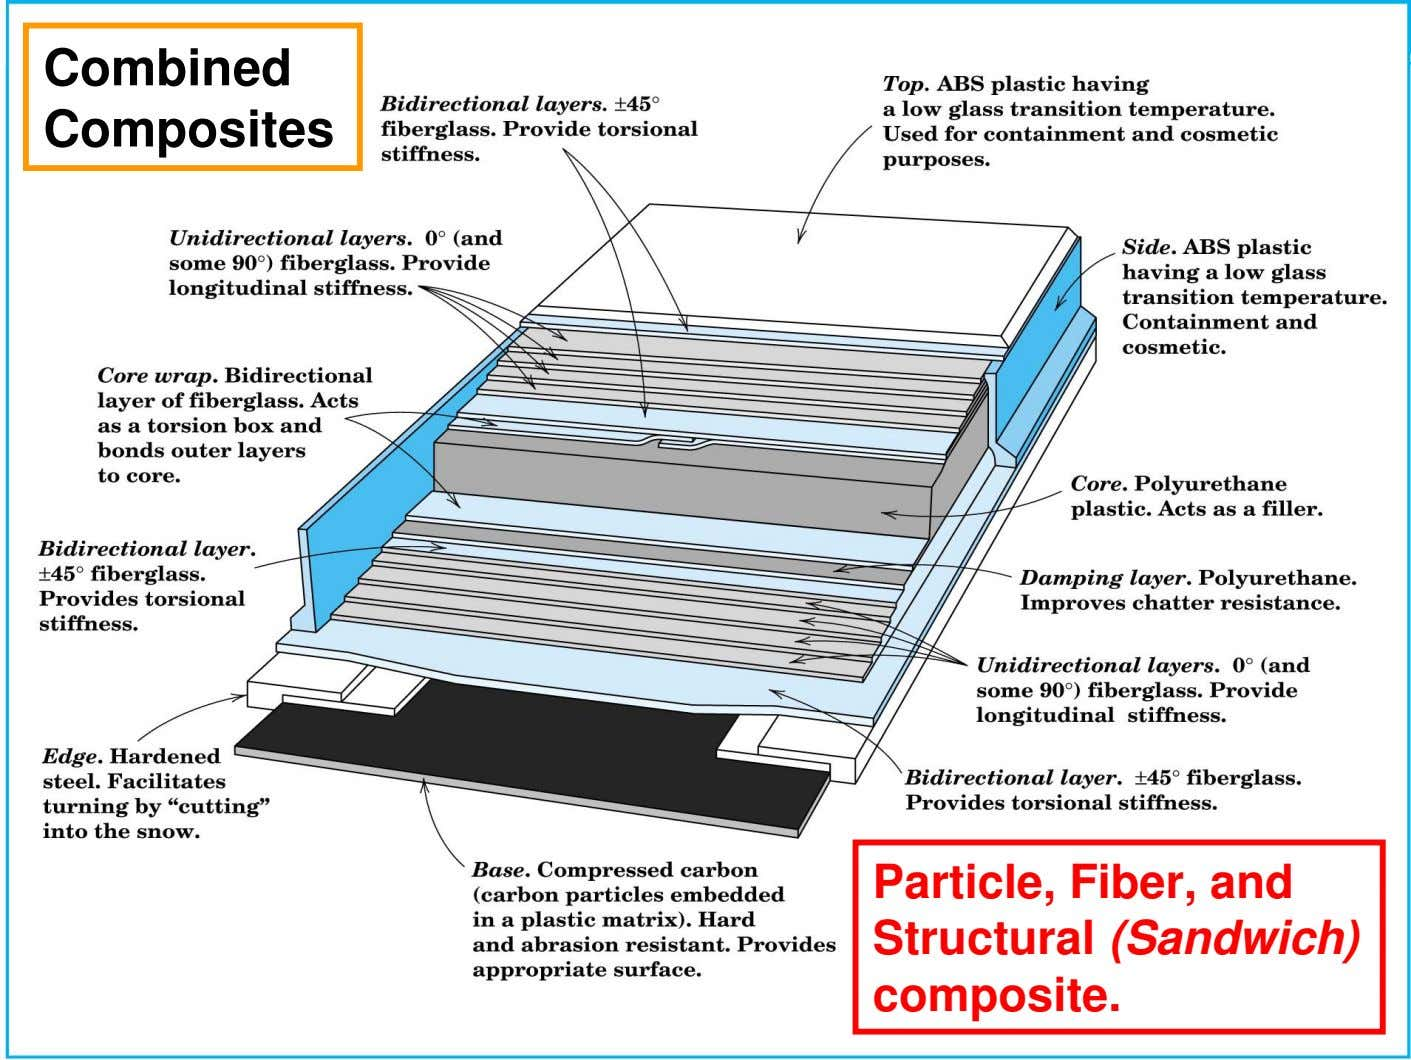 Combined Composites Particle, Fiber, and Structural (Sandwich) composite.